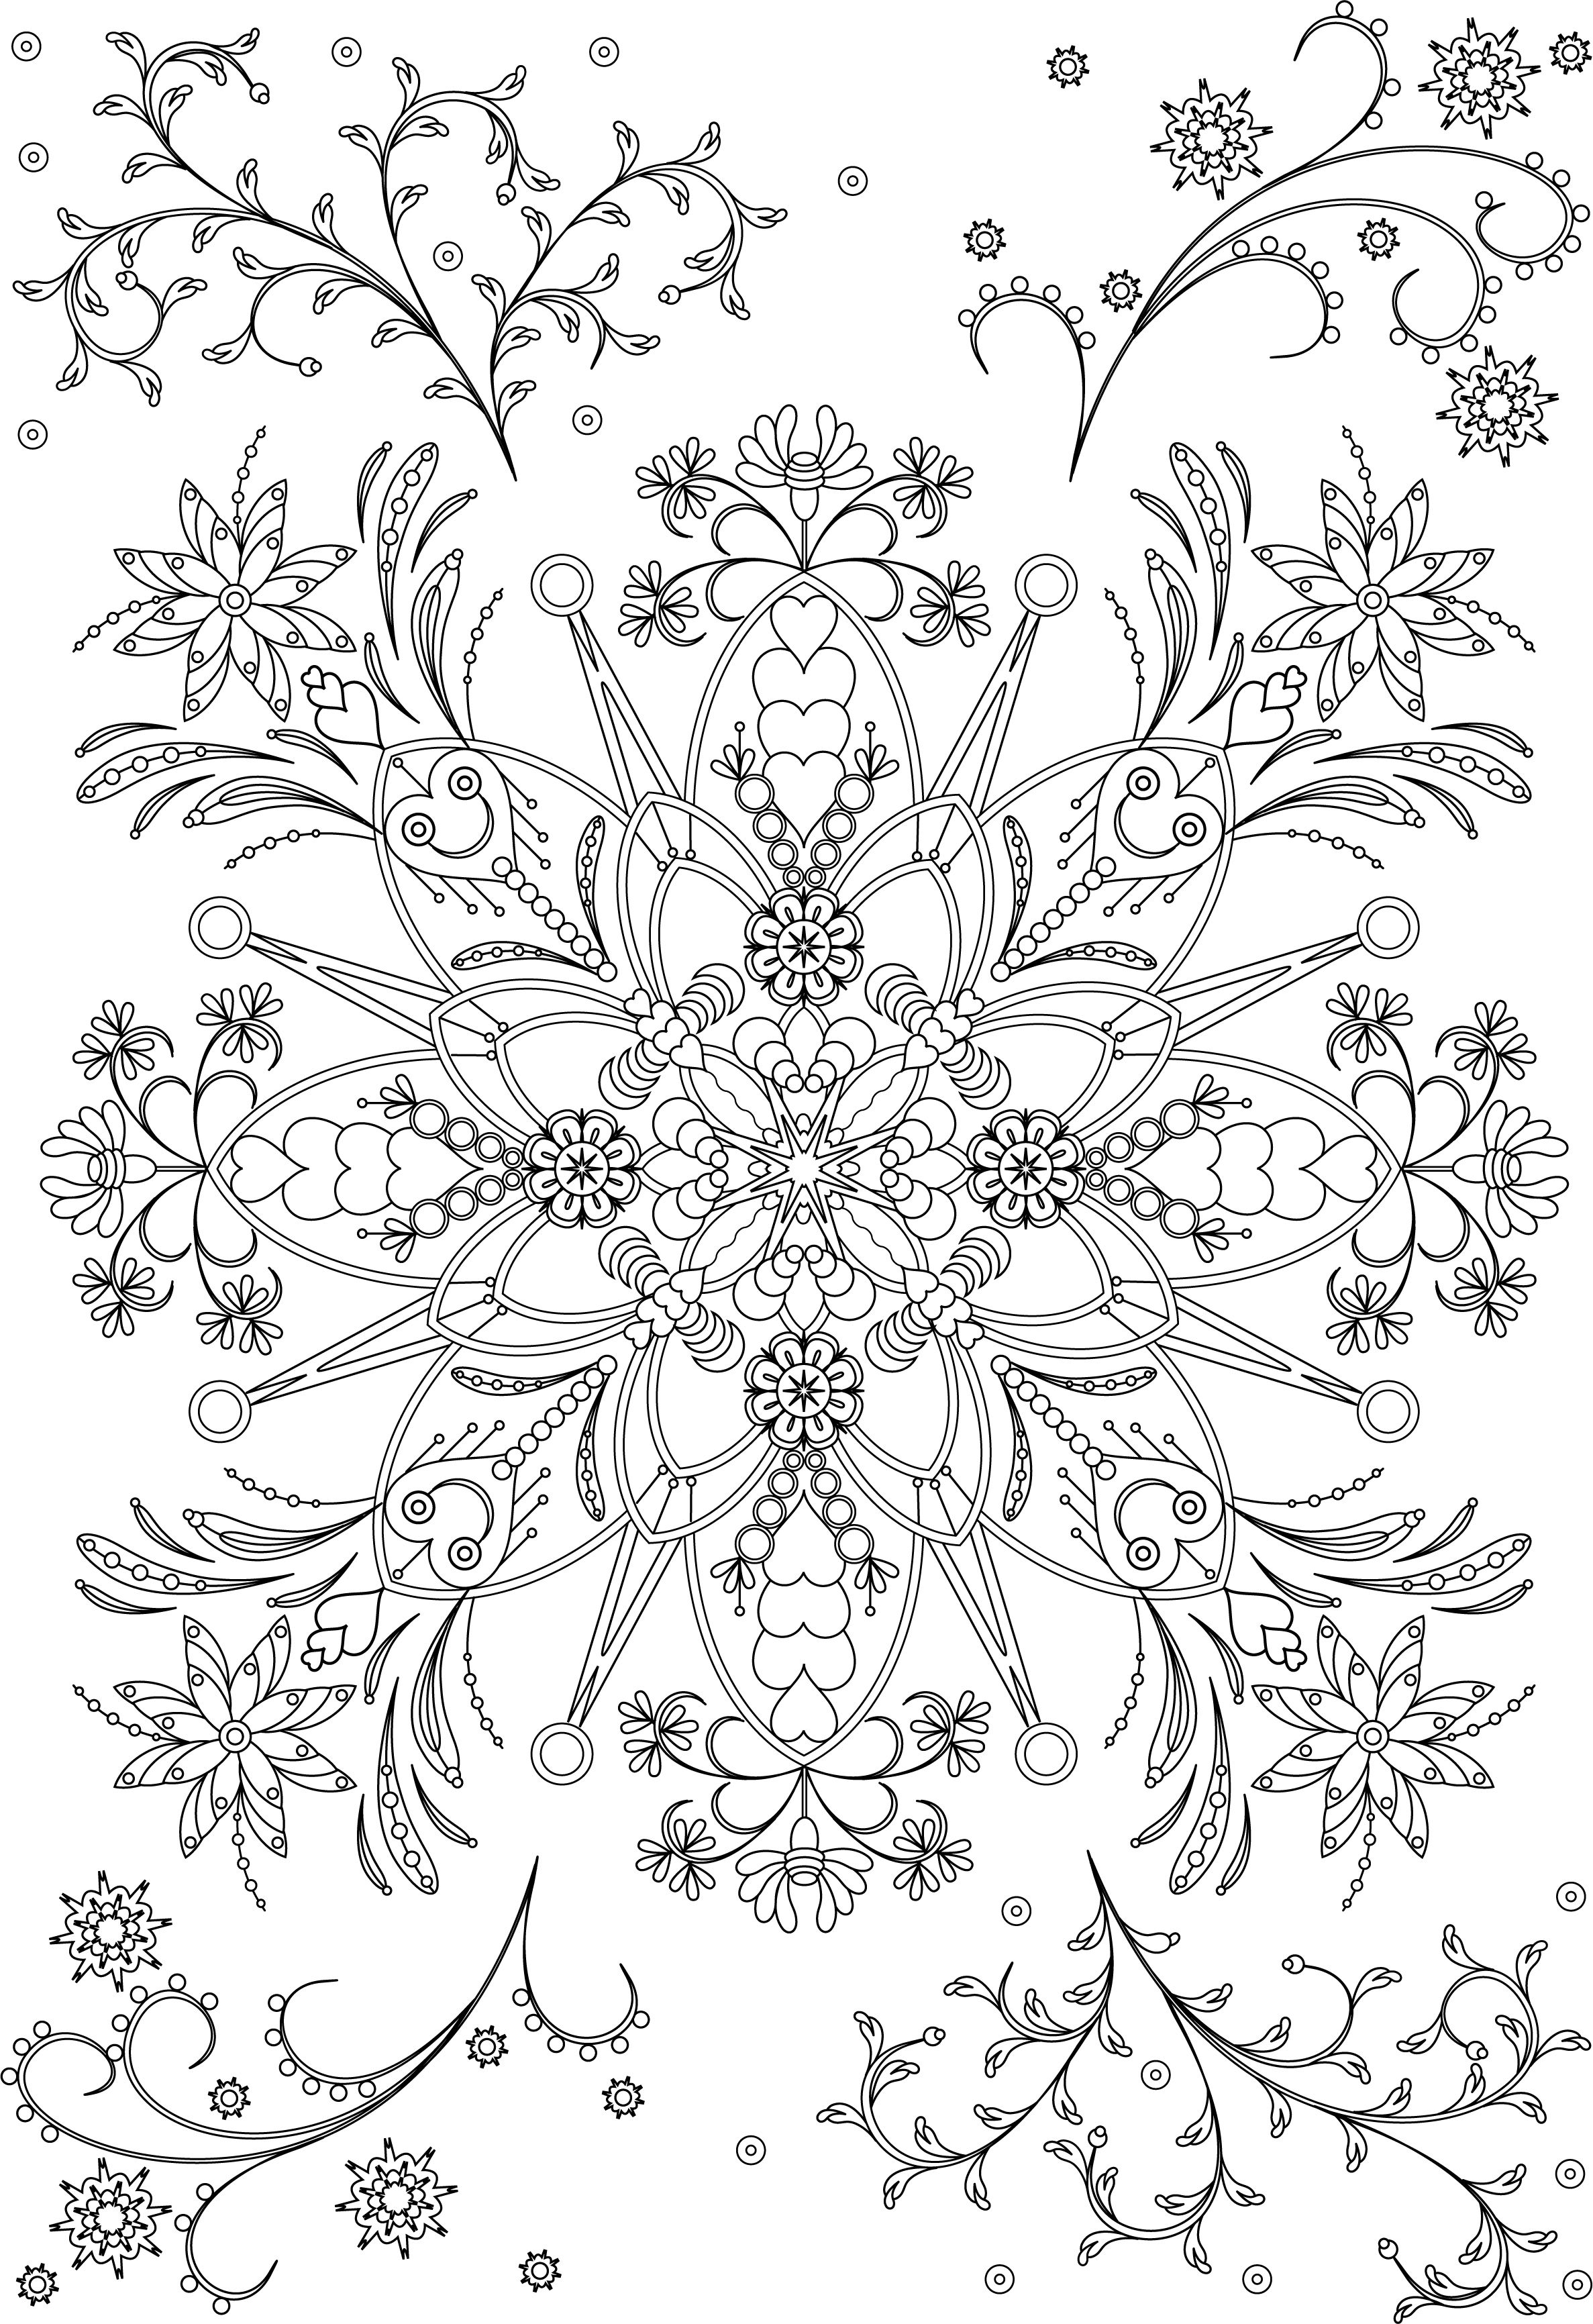 Decorative Round Ornament Flower Mandala Vector Illustration For Coloring Pages Anti S Abstract Coloring Pages Mandala Coloring Pages Pattern Coloring Pages